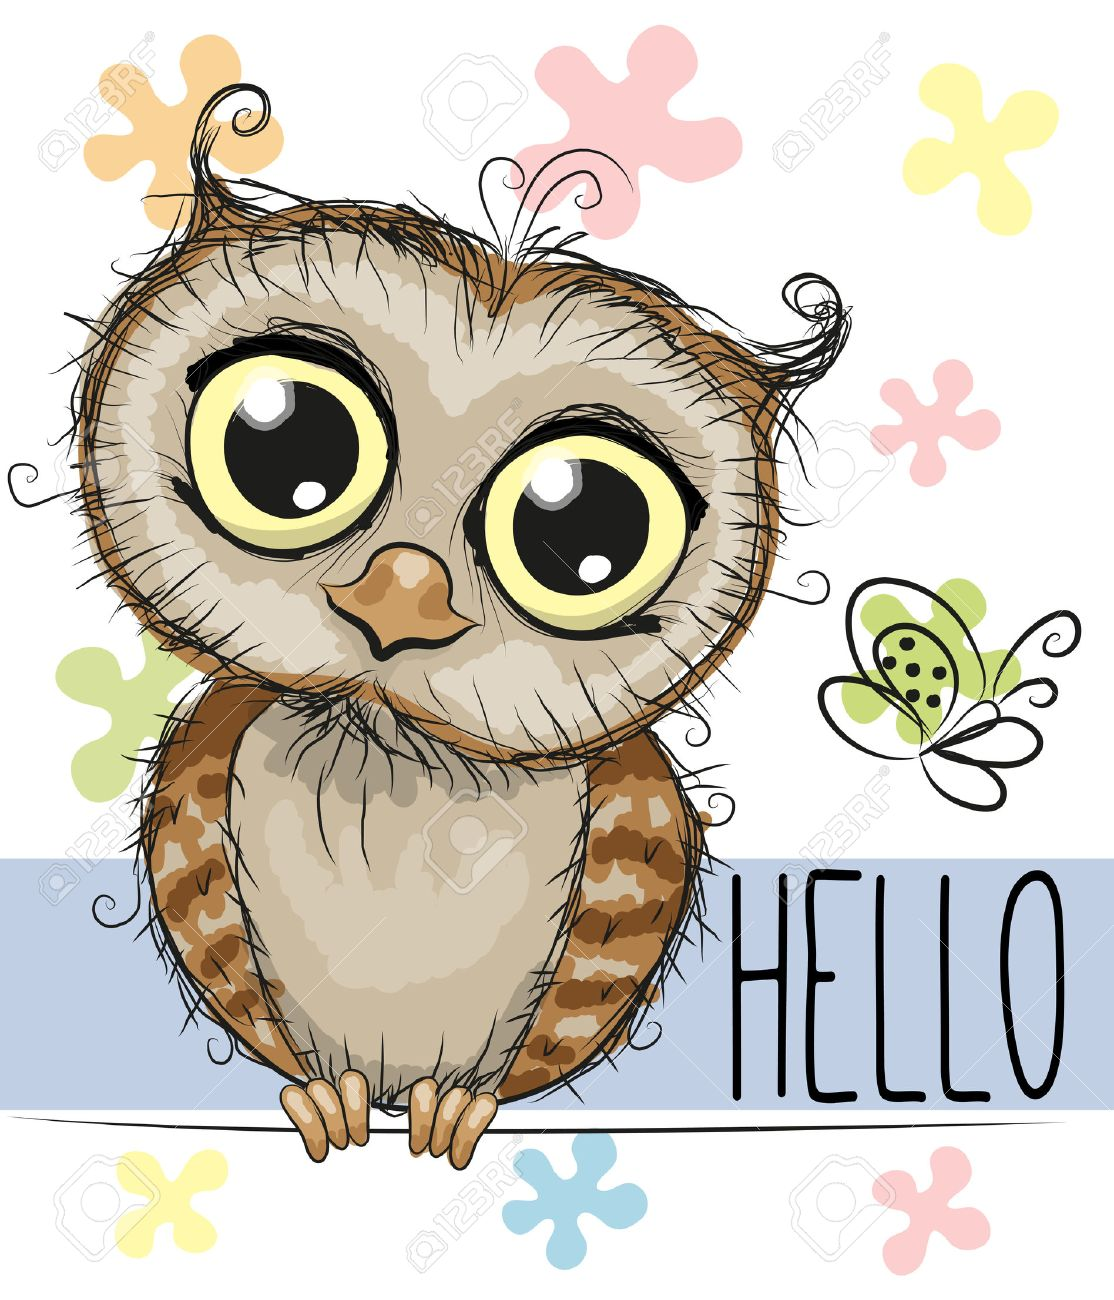 Image of: Png Cute Cartoon Owl And Butterfly On Floral Background Stock Vector 46286526 123rfcom Cute Cartoon Owl And Butterfly On Floral Background Royalty Free